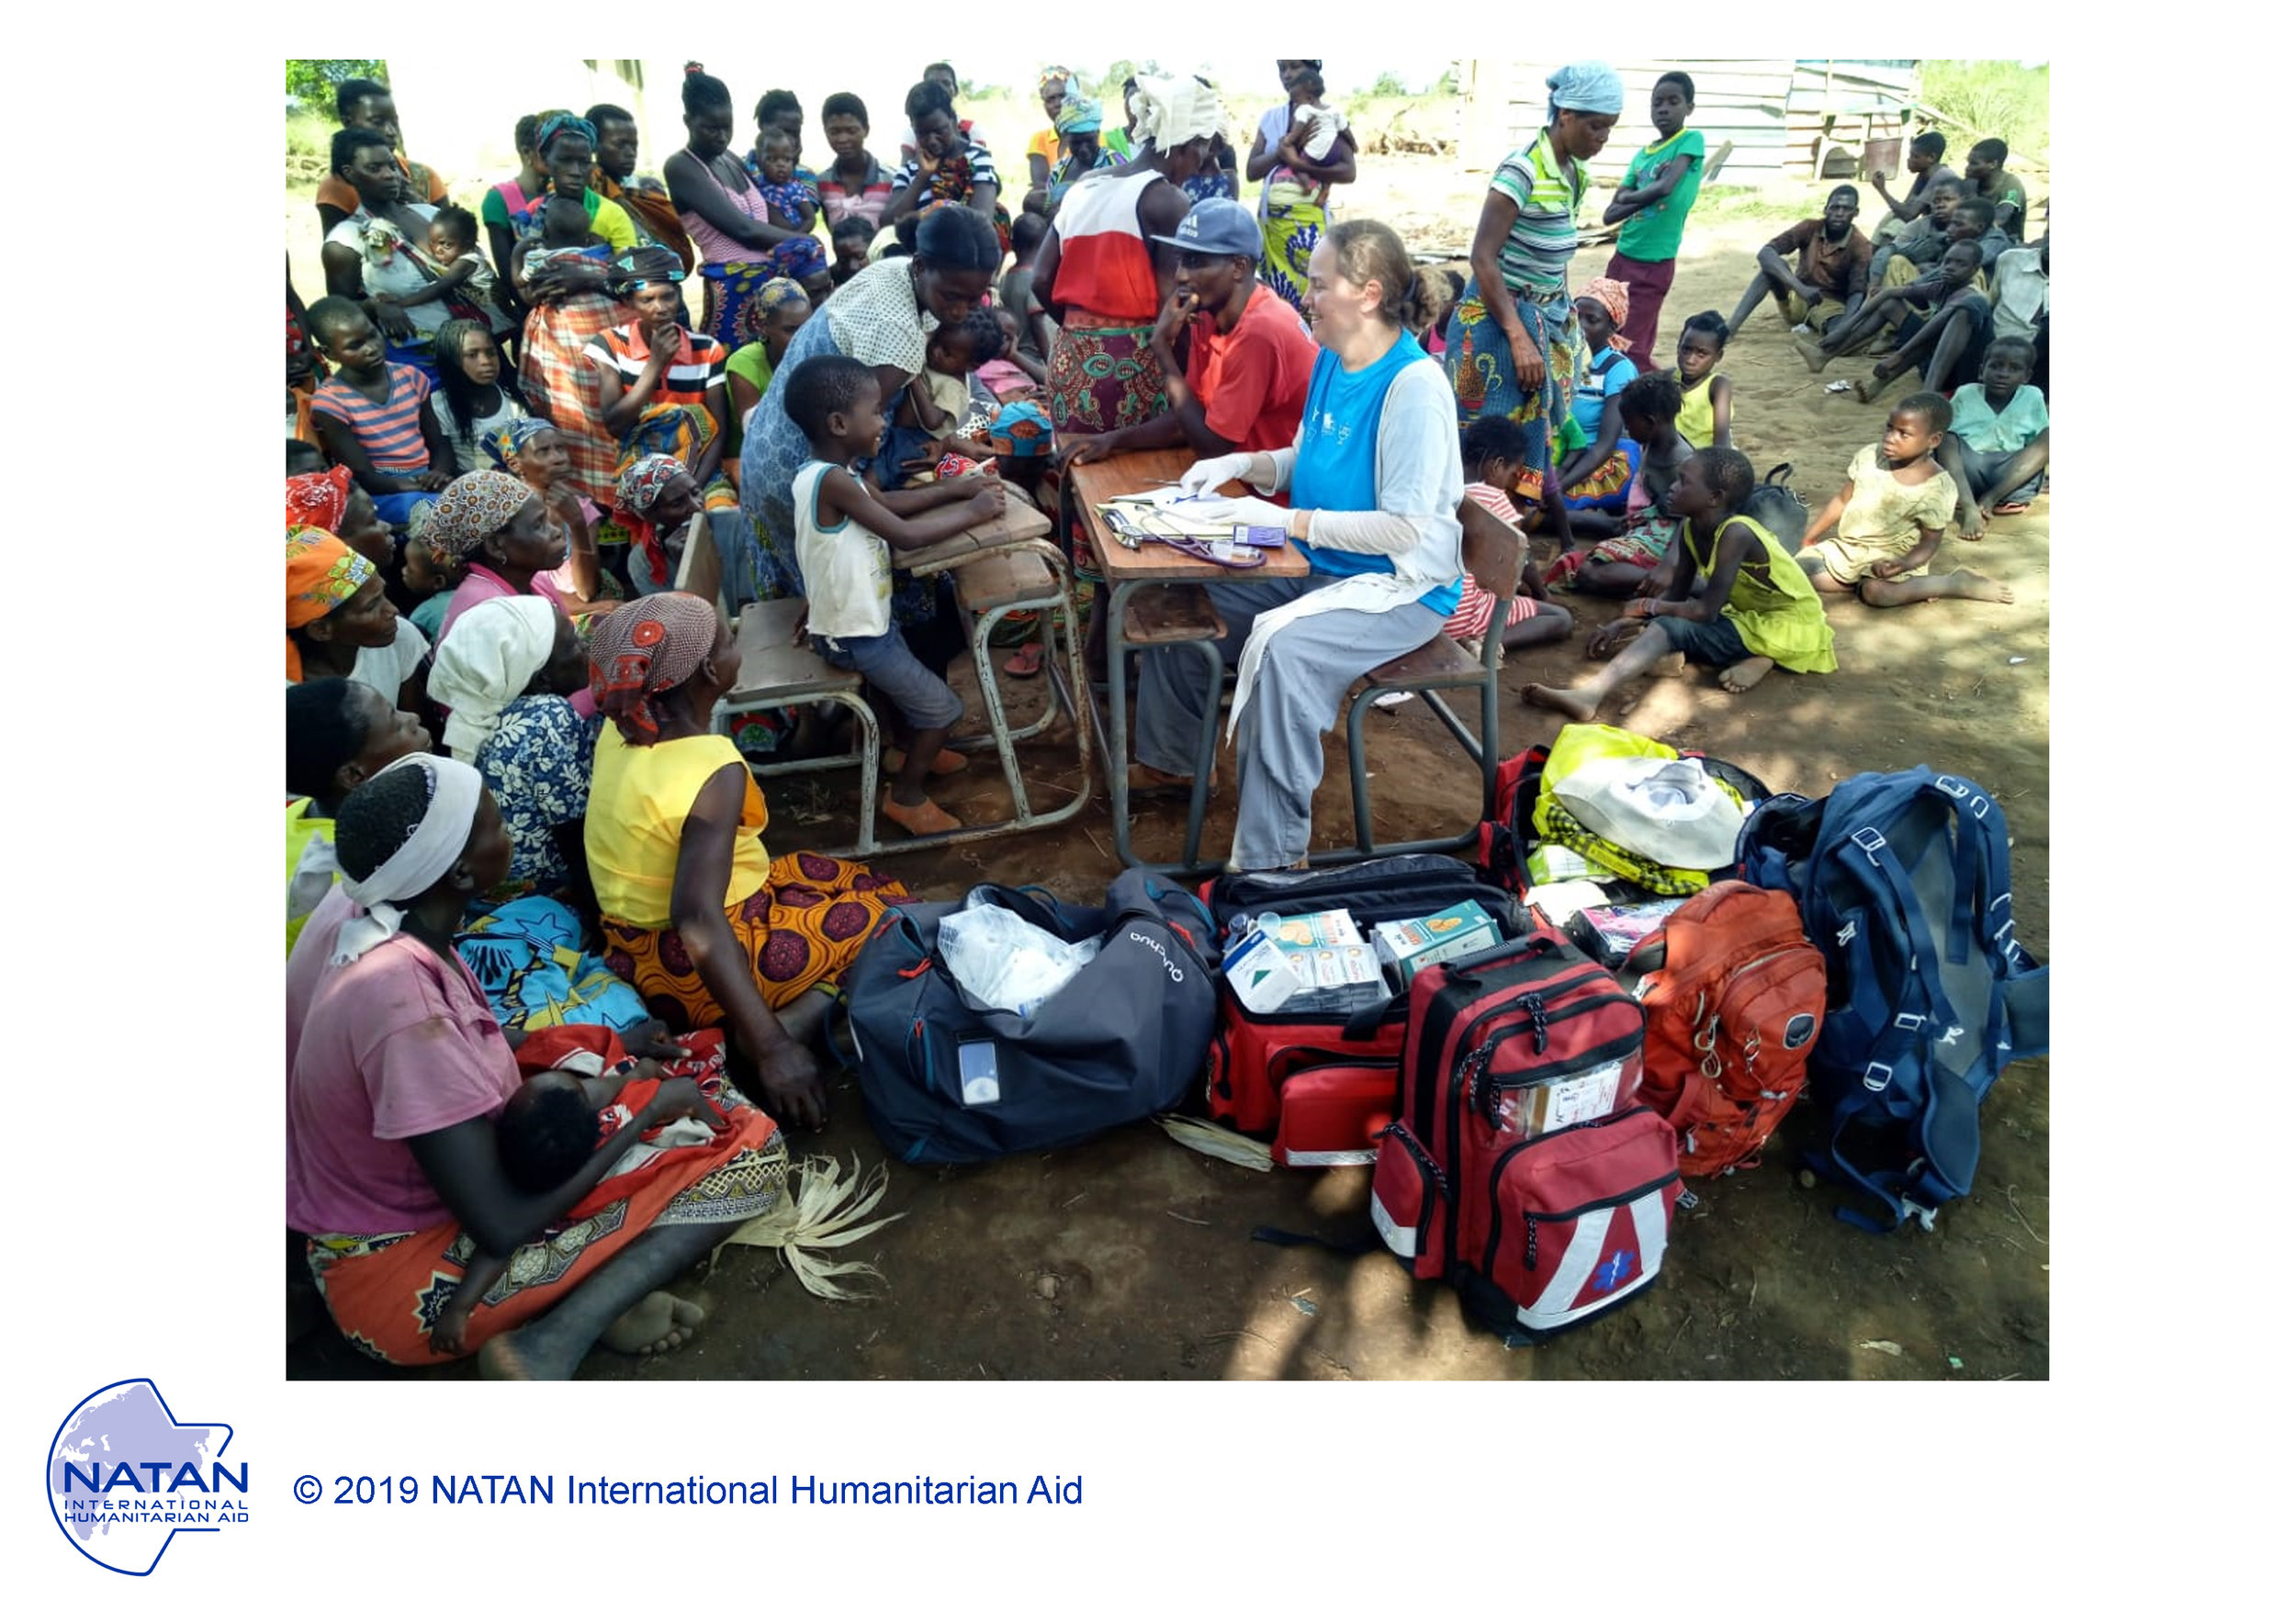 mozambique 2019 - natan md treating patients at outdoor field clinic near beira mozambique following cyclone idai